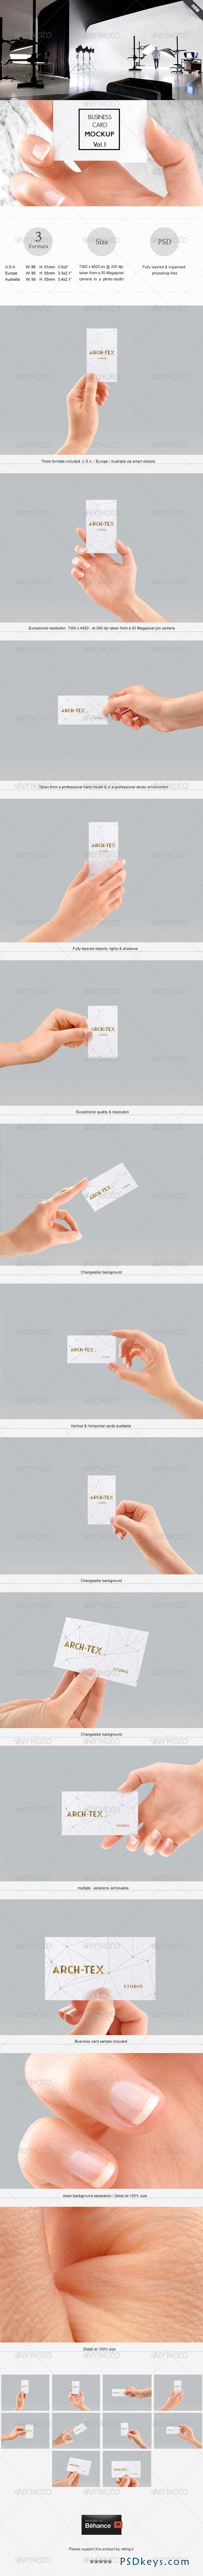 Business Card Mock up Vol 1 Hand edition Free Download